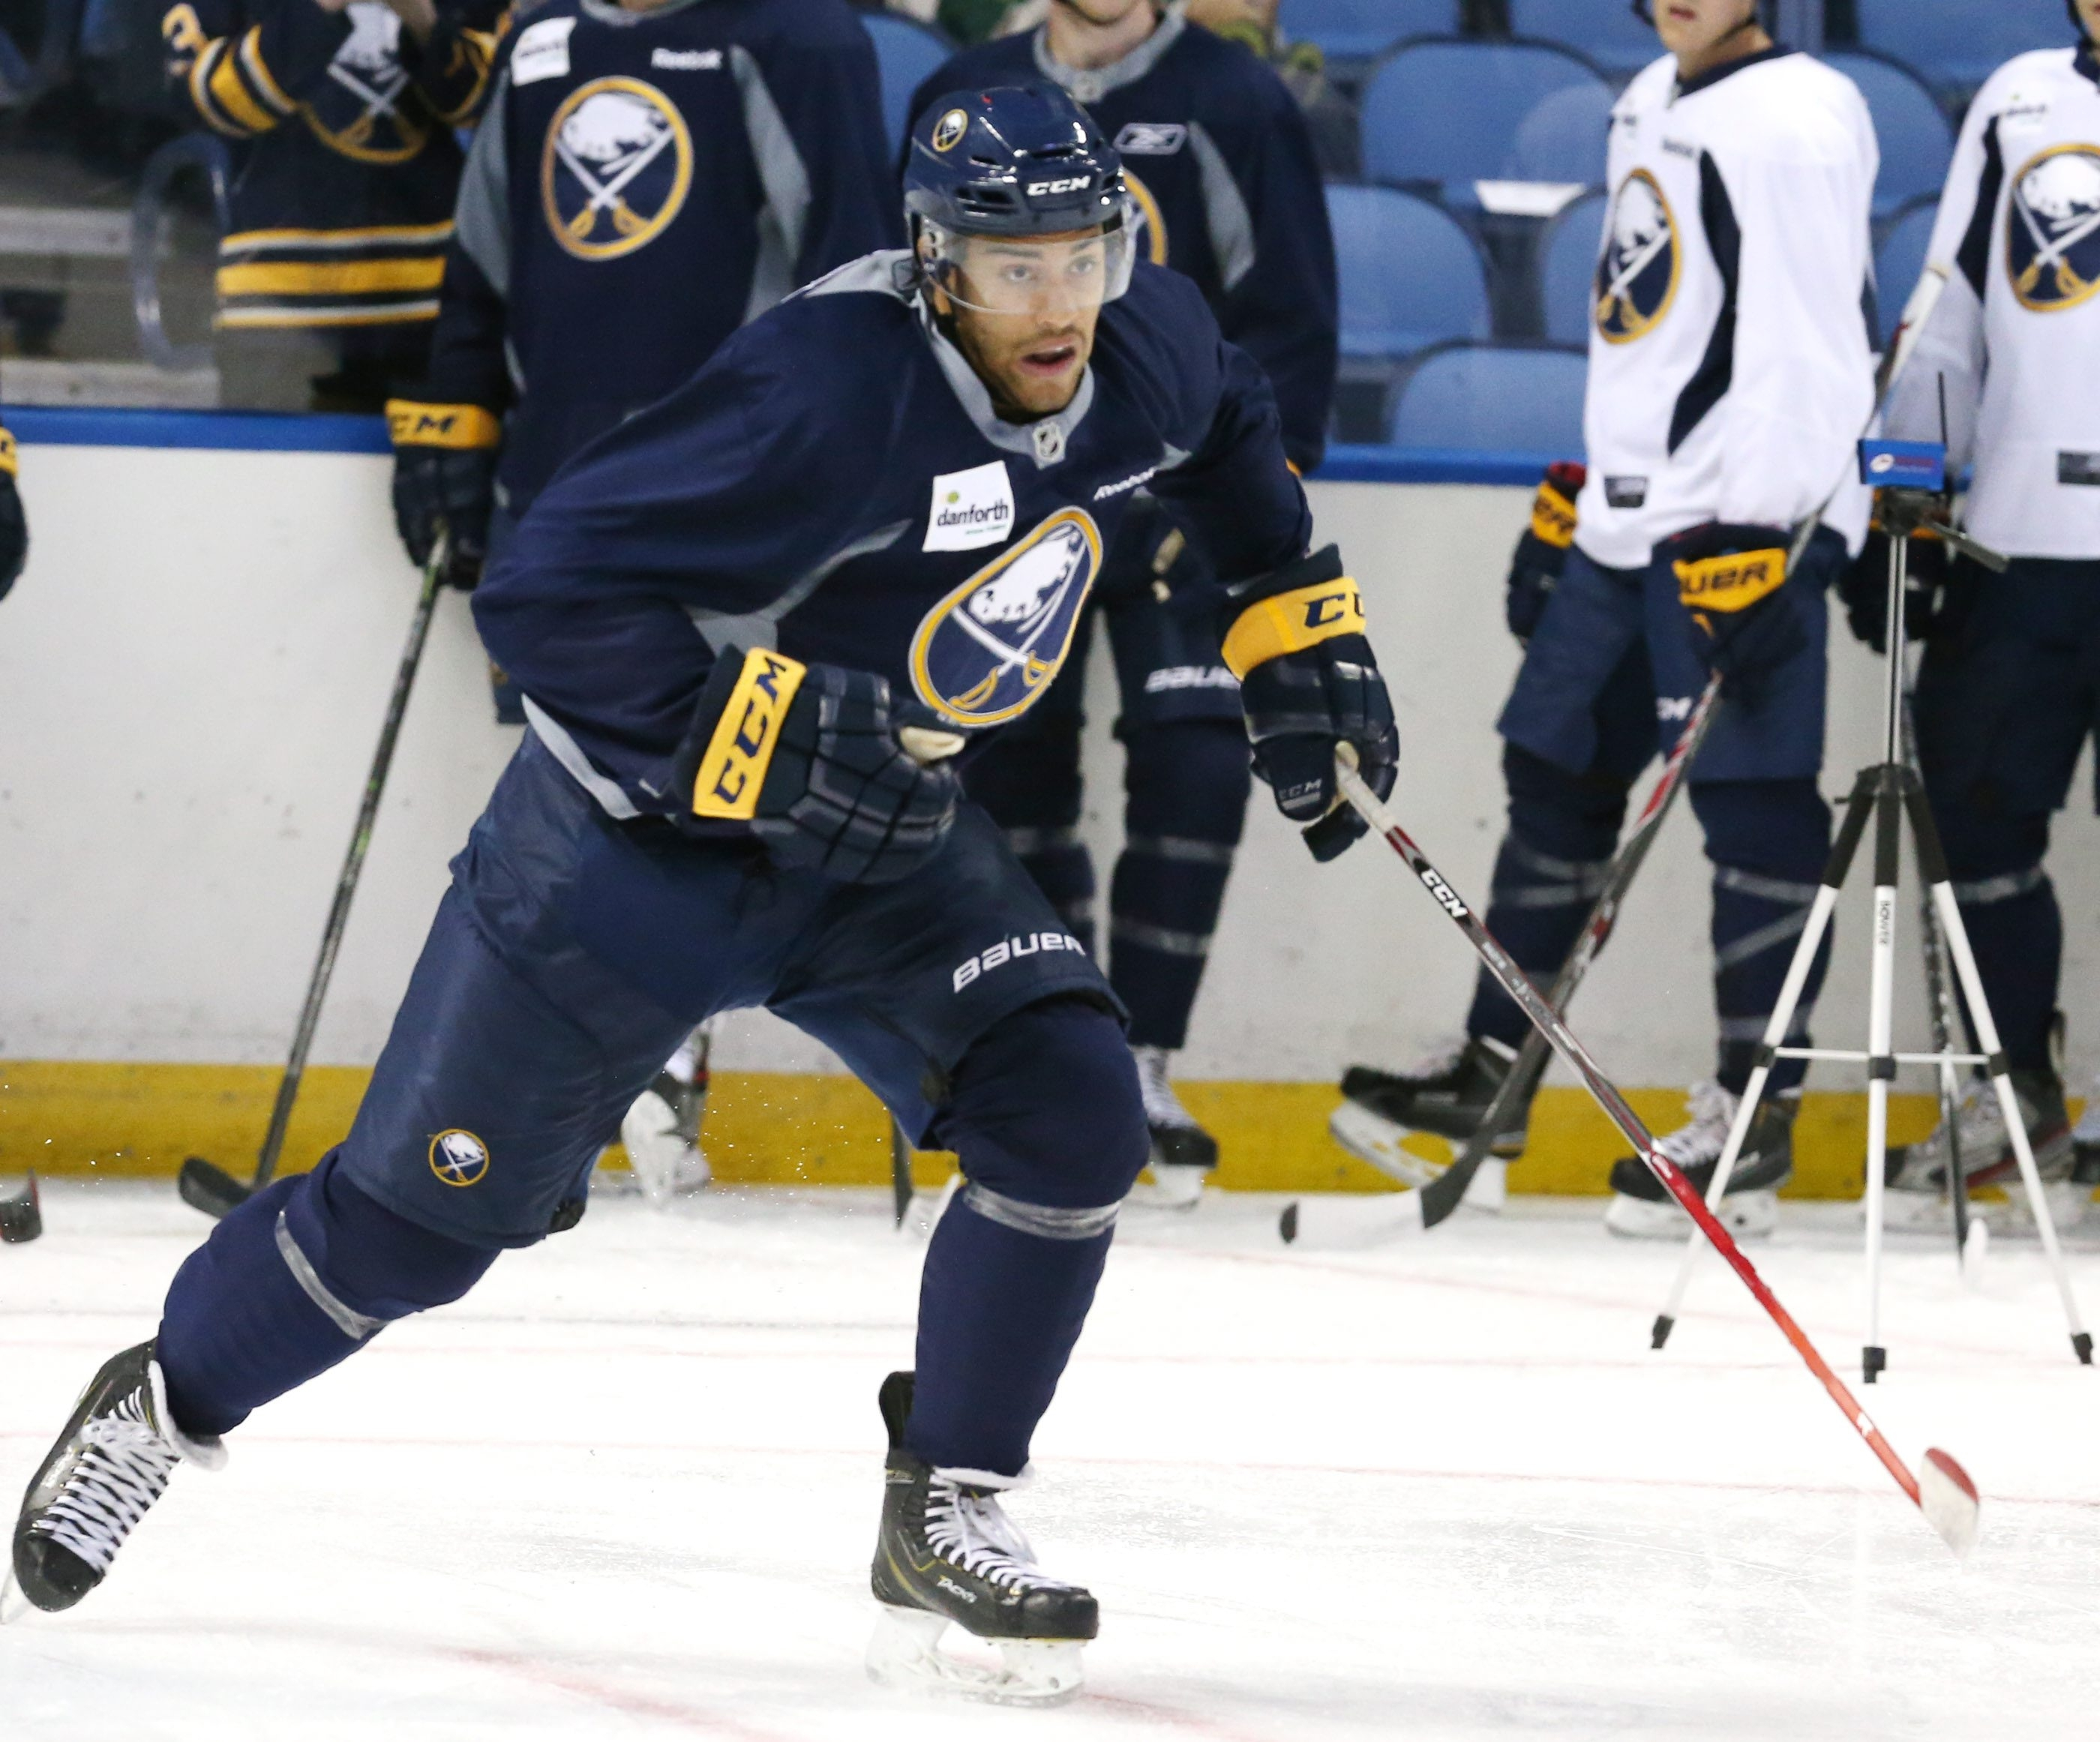 Buffalo Sabres Justin Bailey skates for time during Day Four of Sabres Development Camp at First Niagara Center in Buffalo,NY on Thursday, July 9, 2015.  (James P. McCoy/ Buffalo News)